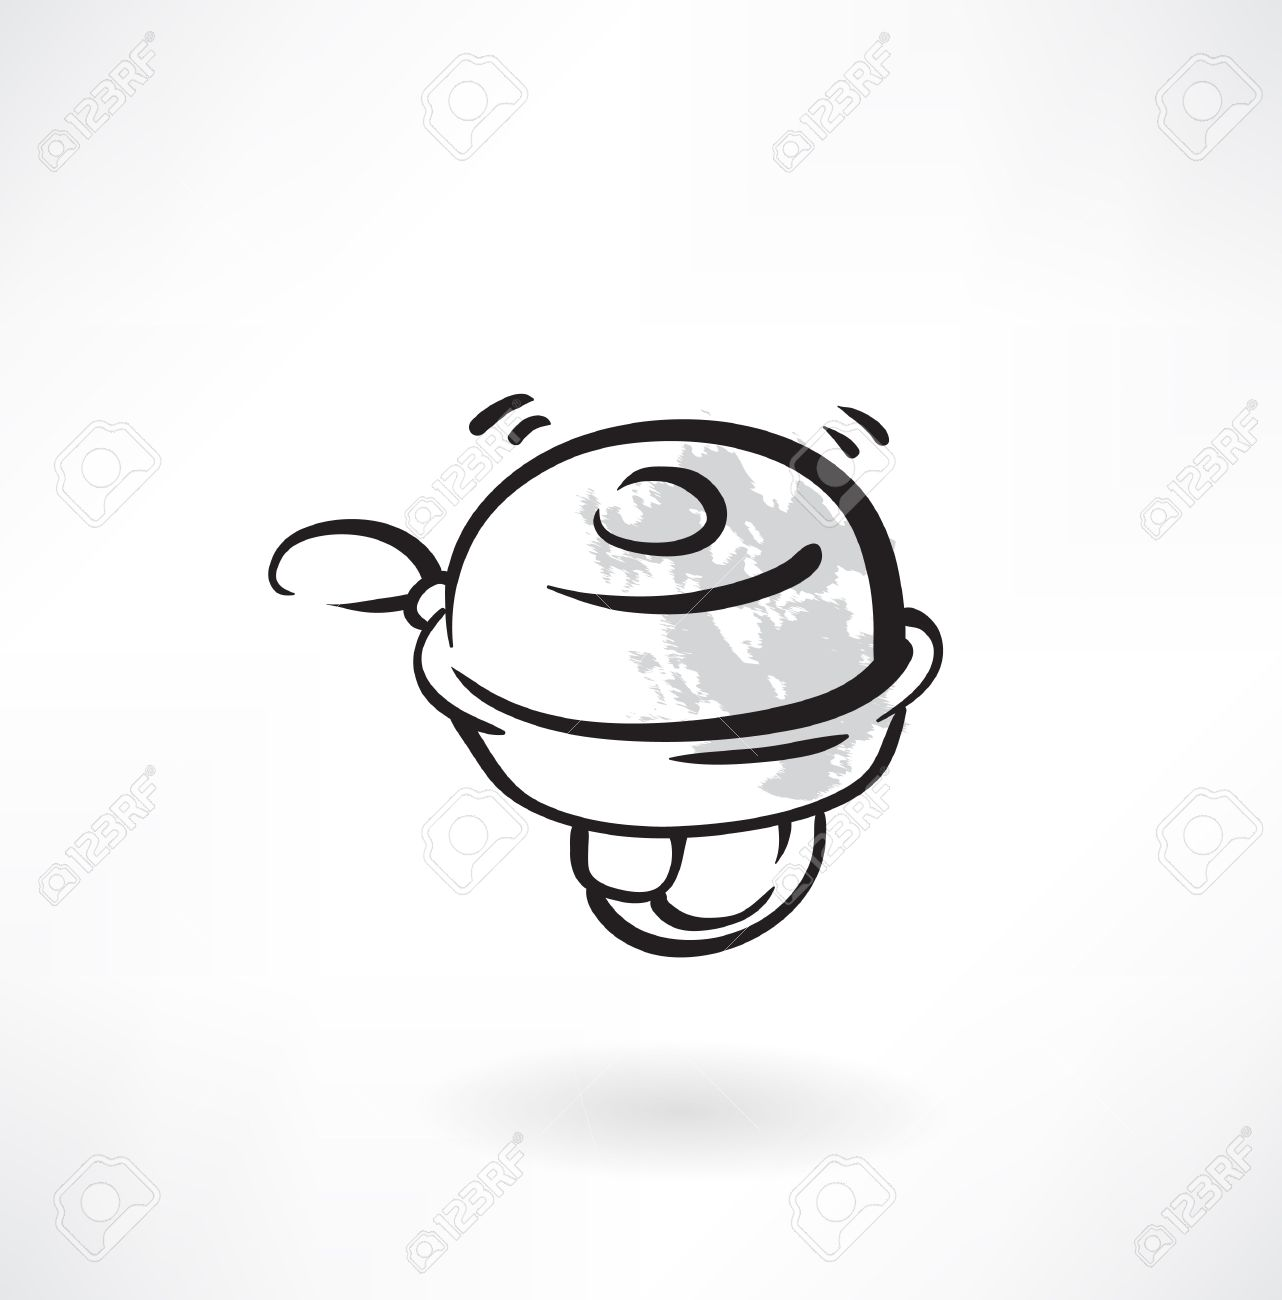 bicycle bell grunge icon - 32210015